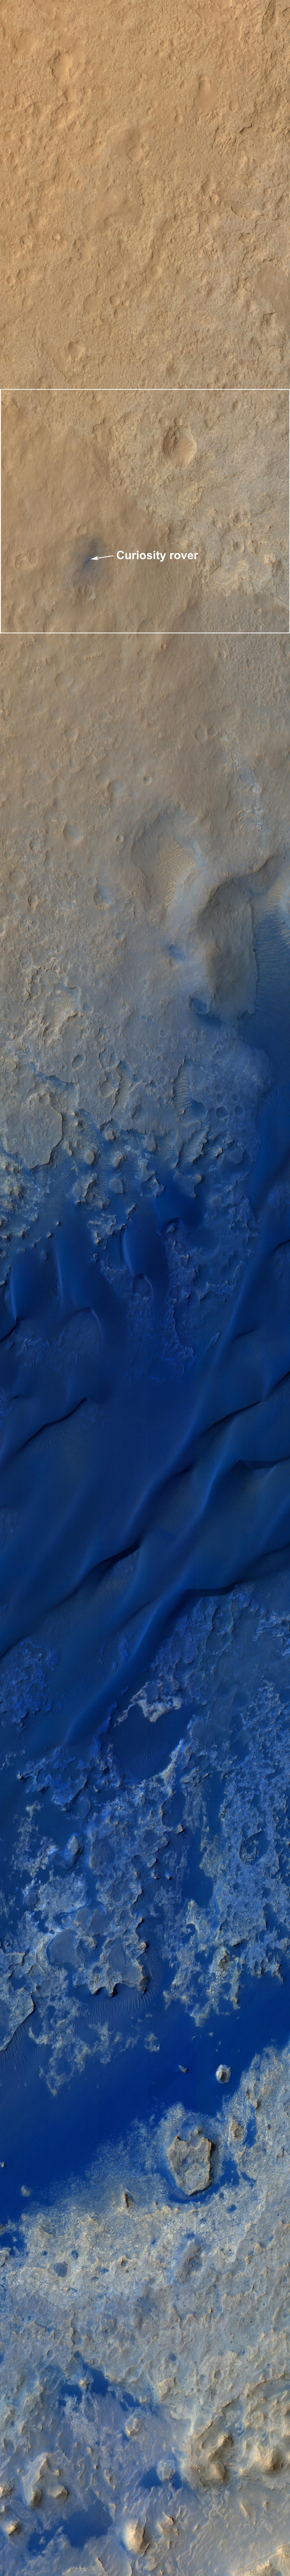 This color-enhanced view shows the terrain around the rover's landing site within Gale Crater on Mars.